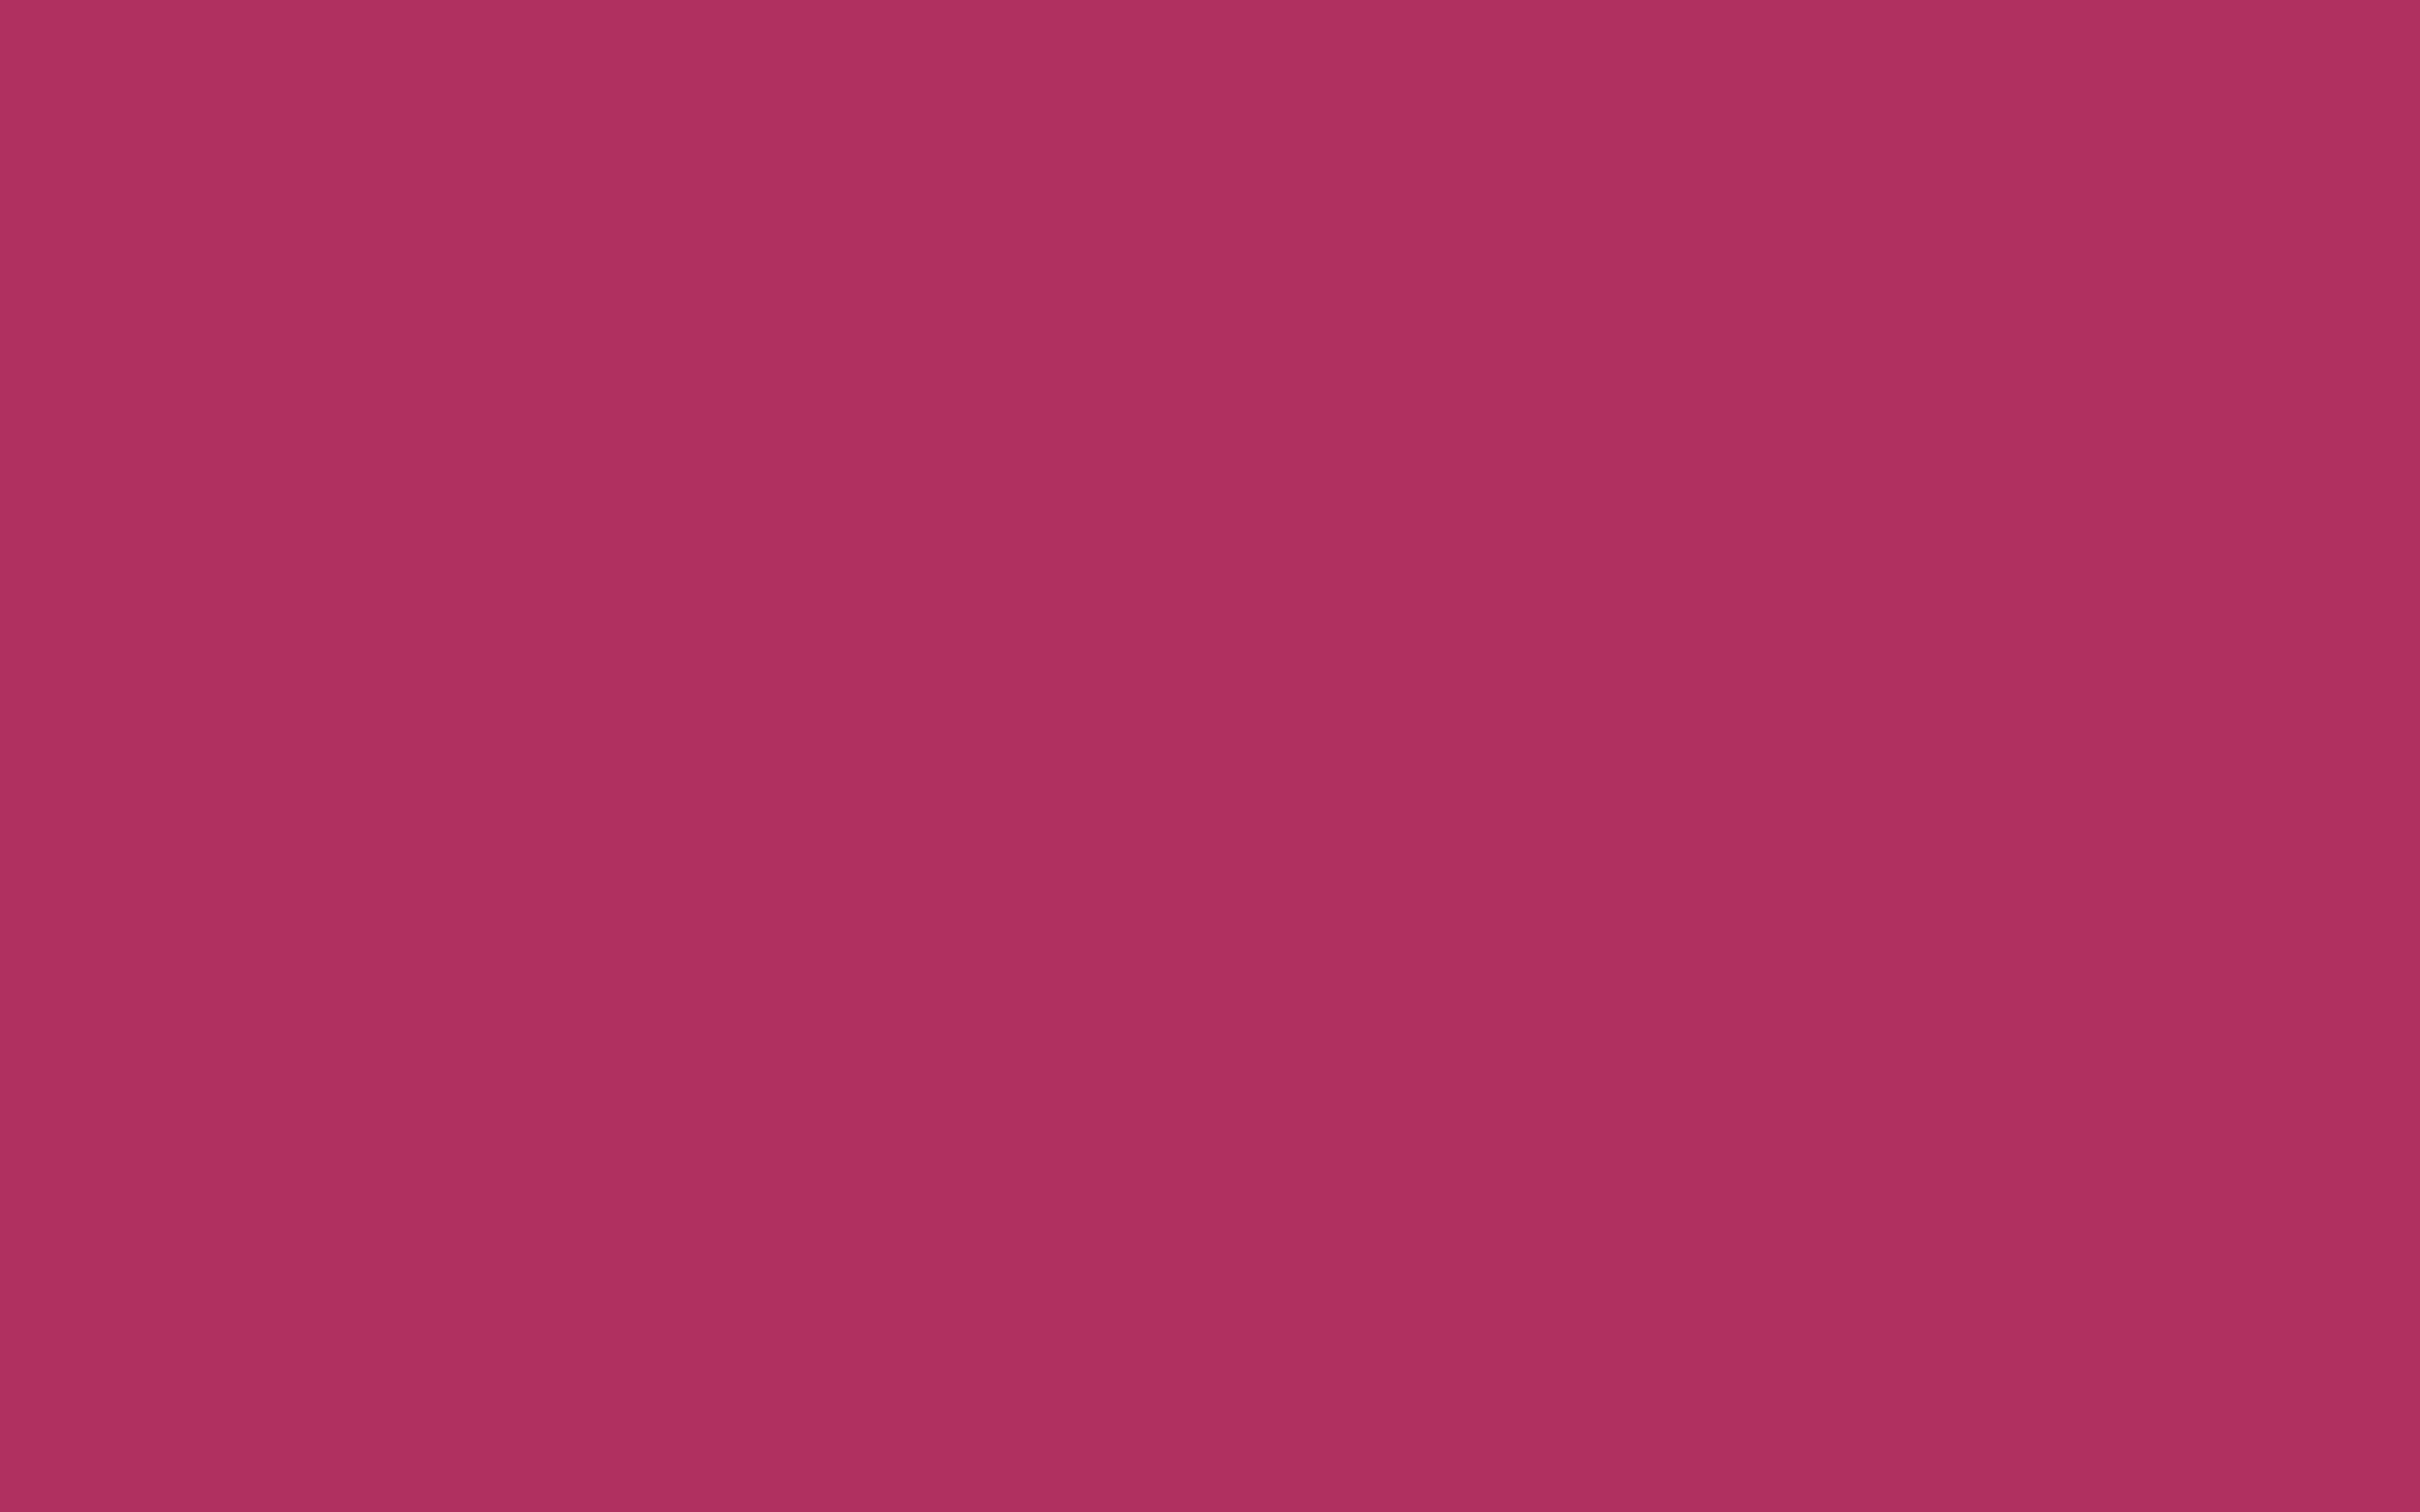 2560x1600 Rich Maroon Solid Color Background